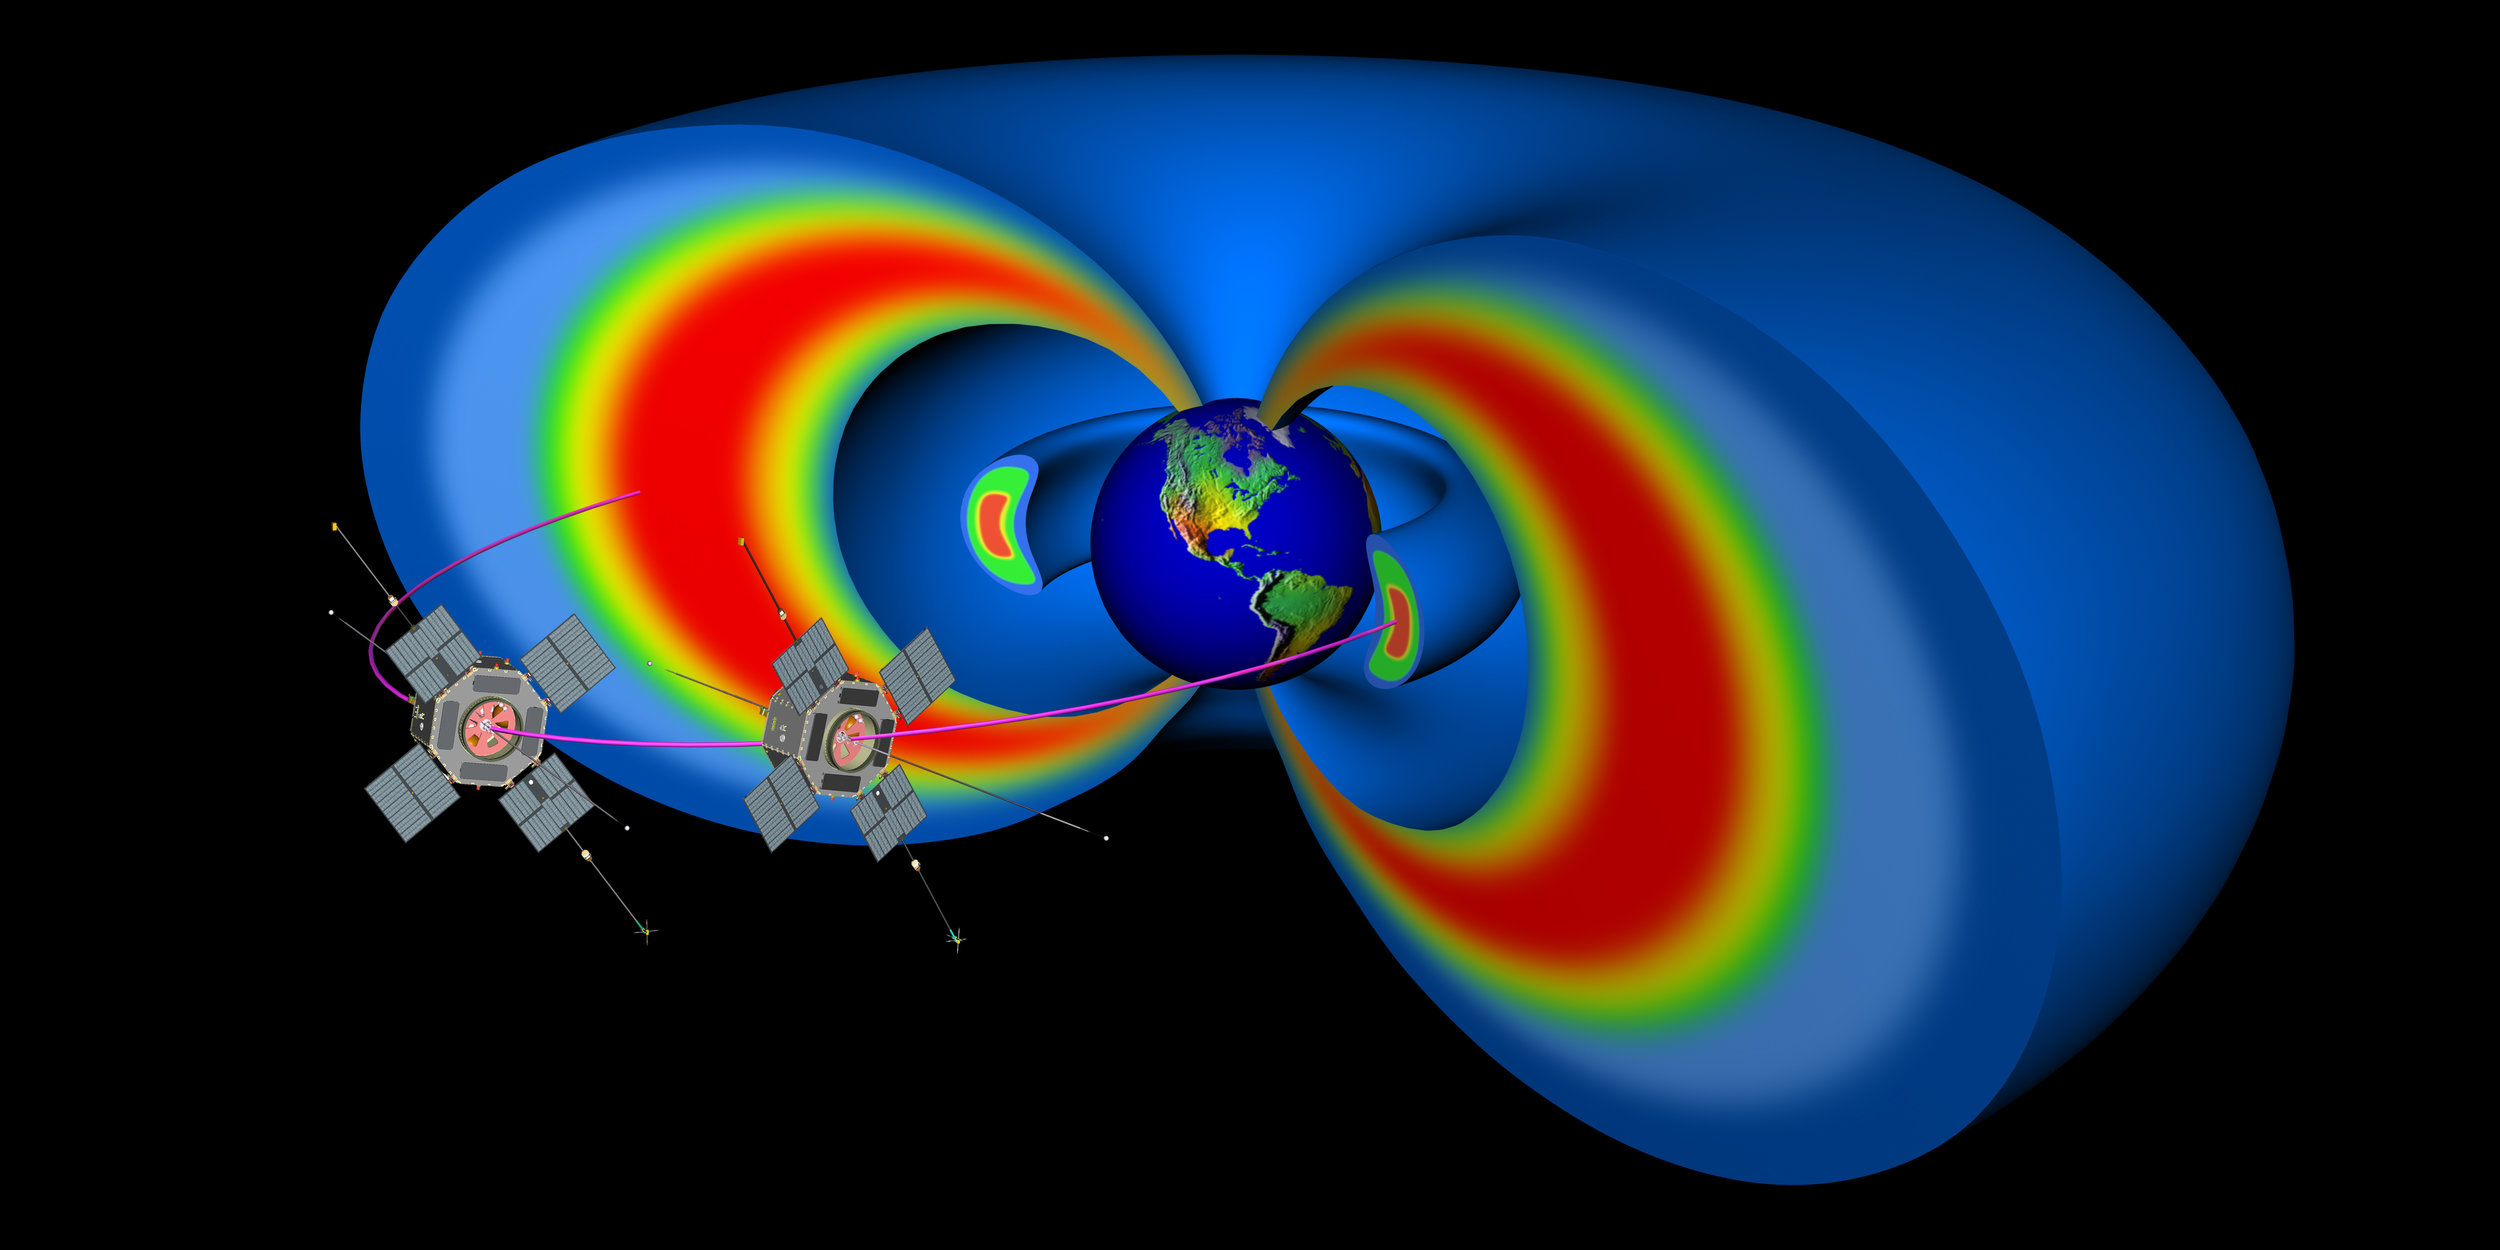 NASA's Van Allen Probes orbit through two giant radiation belts that surround Earth. Their observations help improve computer simulations of events in the belts that can affect technology in space. Image credit:JHU/APL, NASA